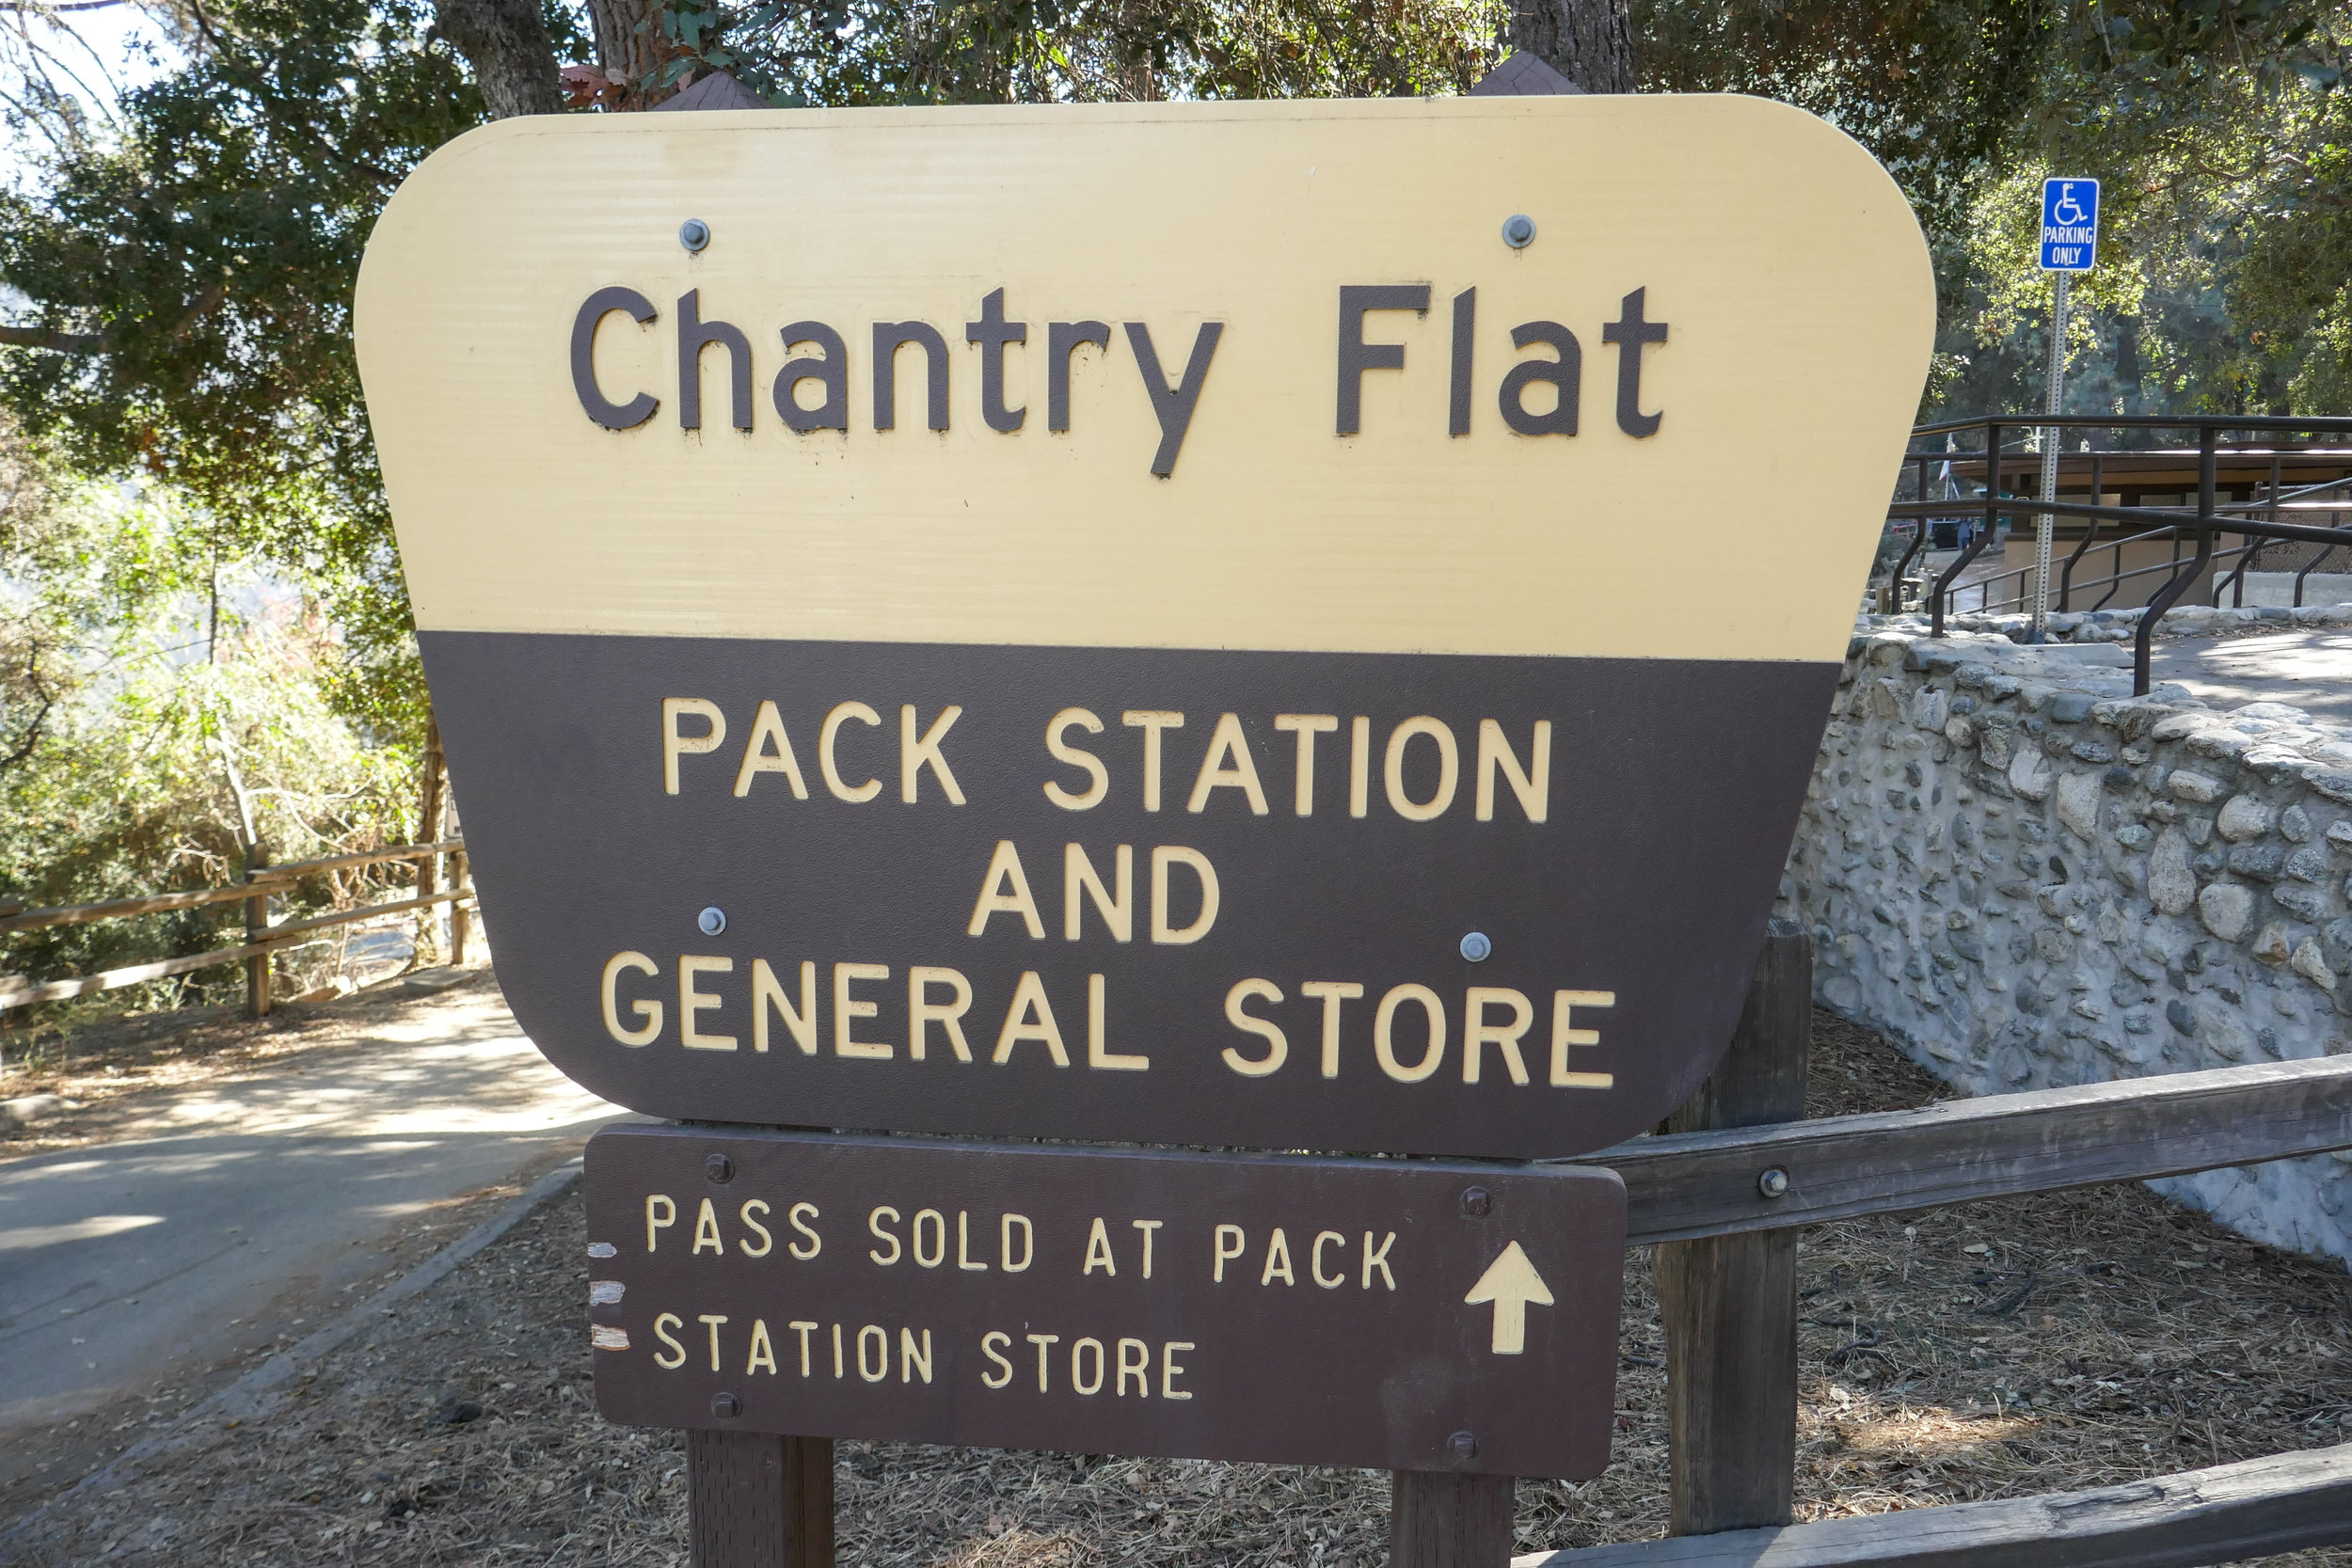 We stopped at the pack station for some ice cream, but the mules were out making a delivery to Sturtevant Camp.